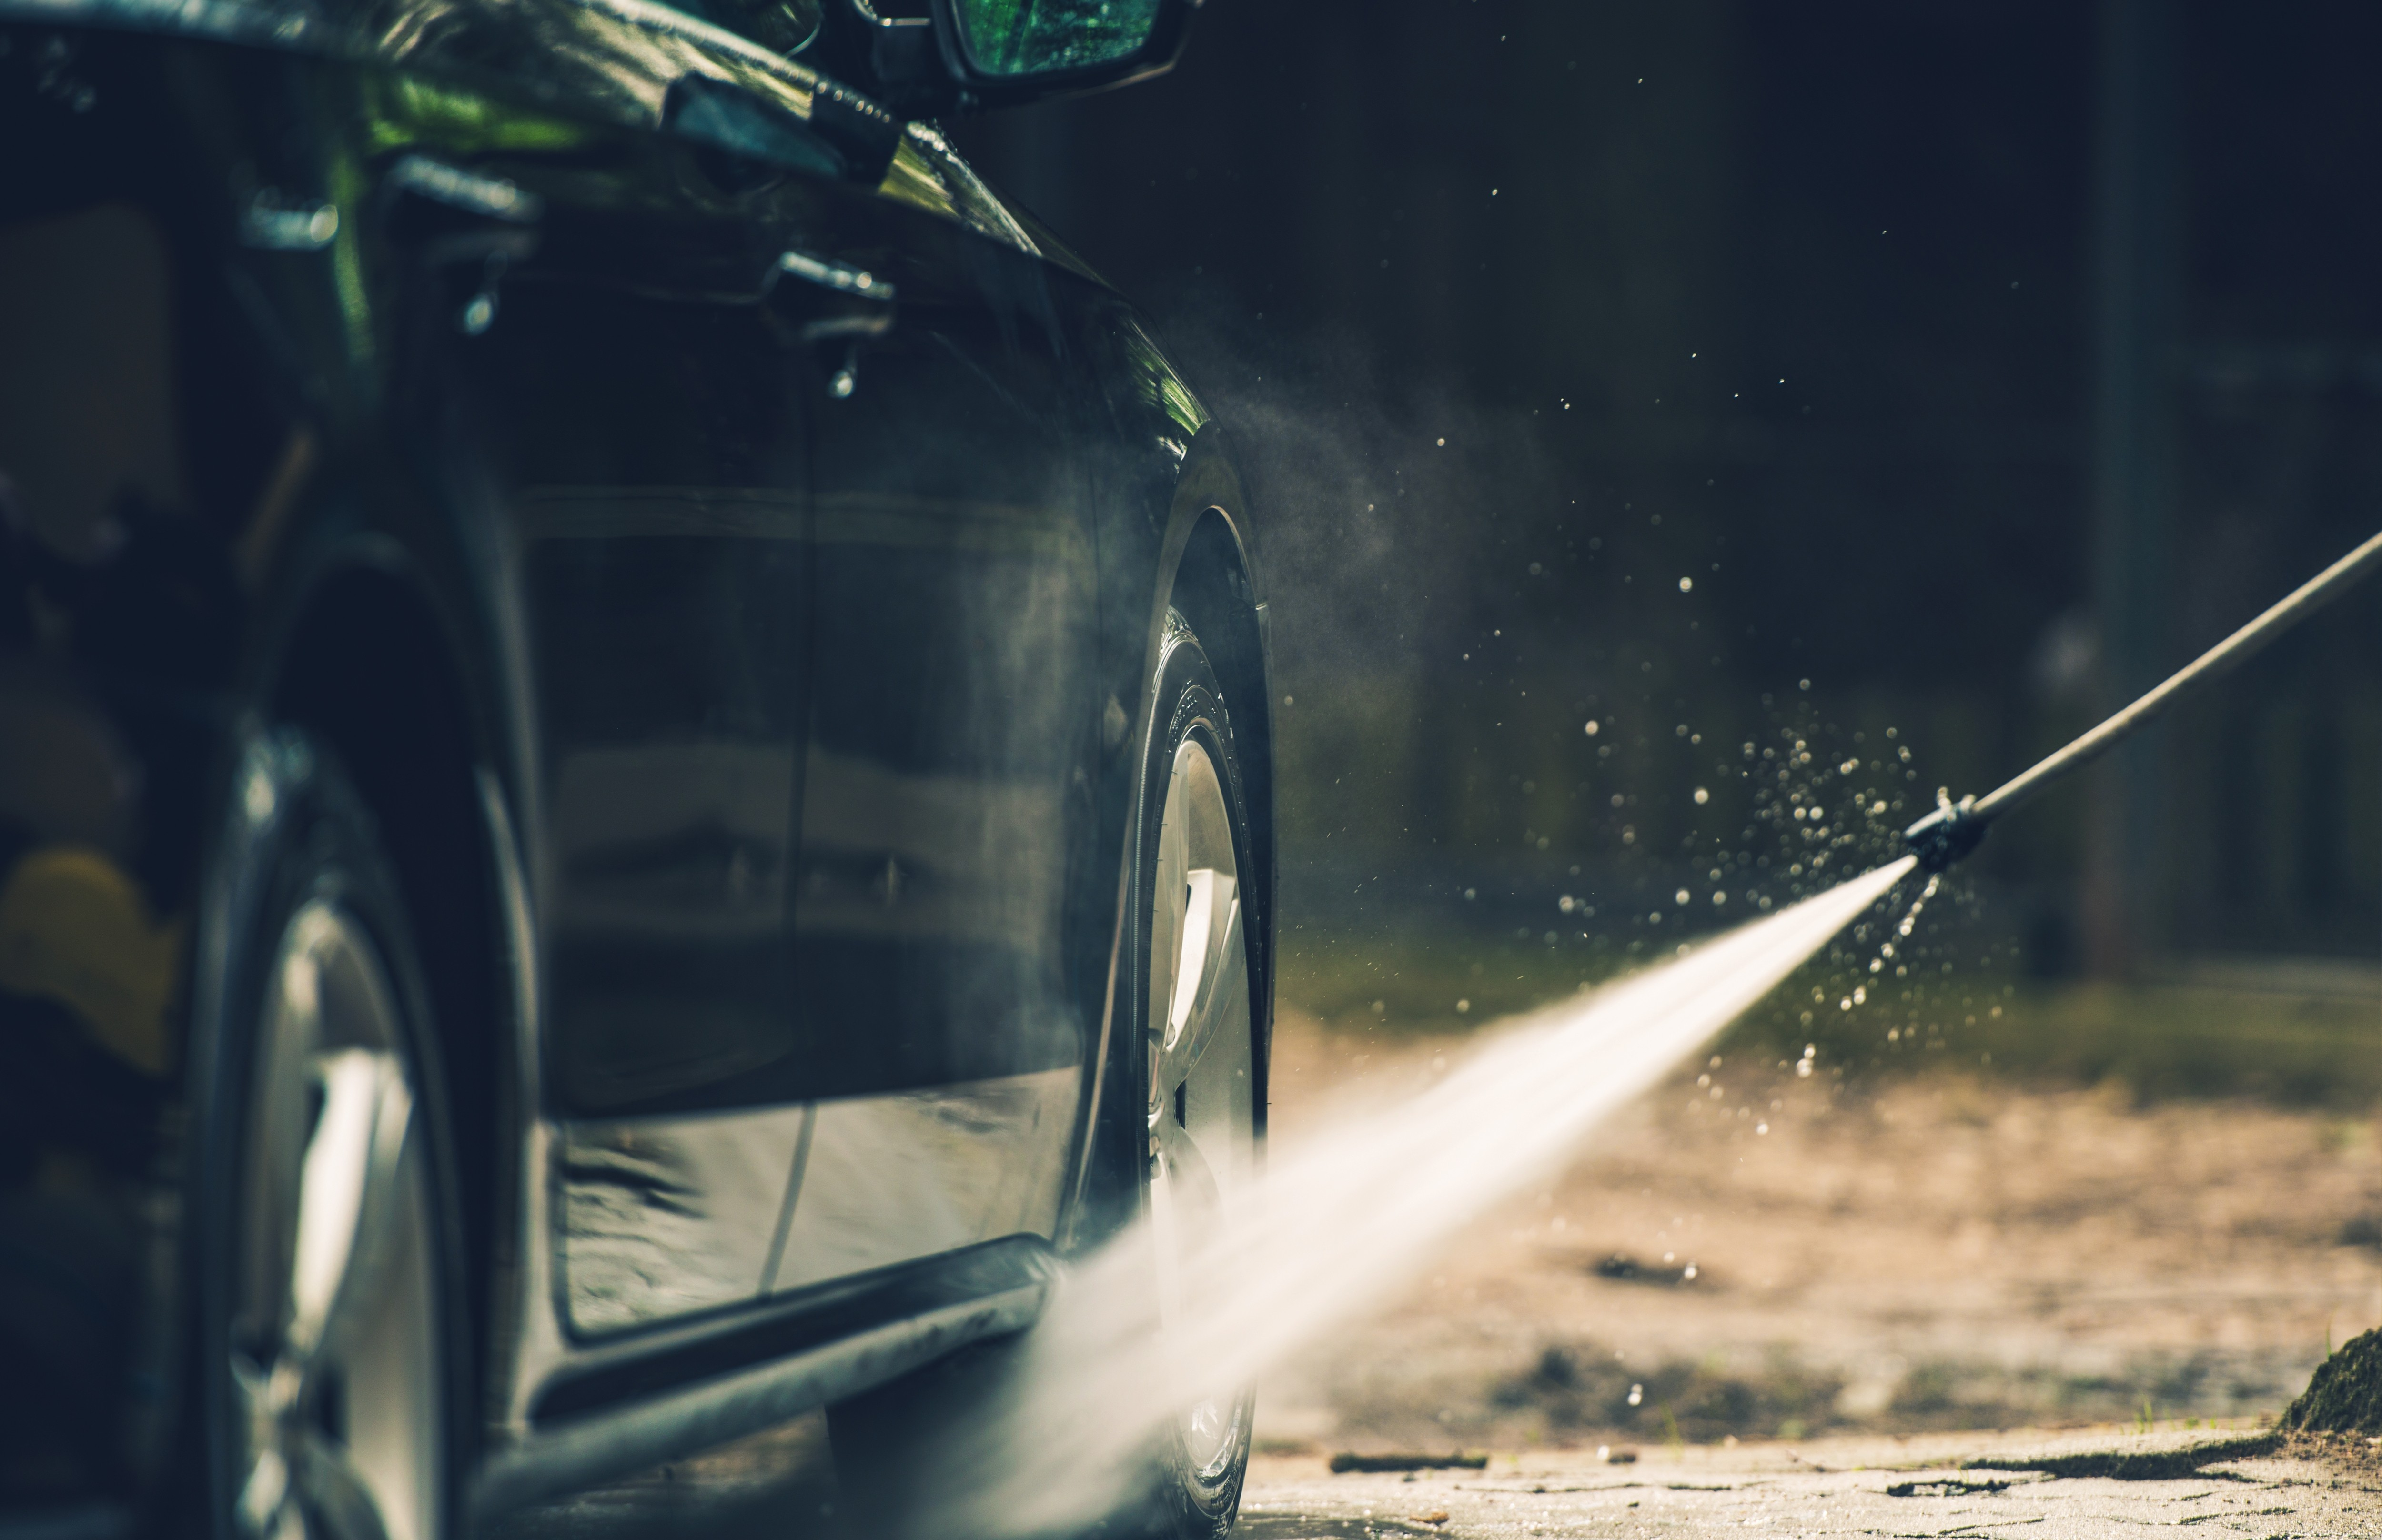 detailed-car-washing-PQEE2QY.jpg